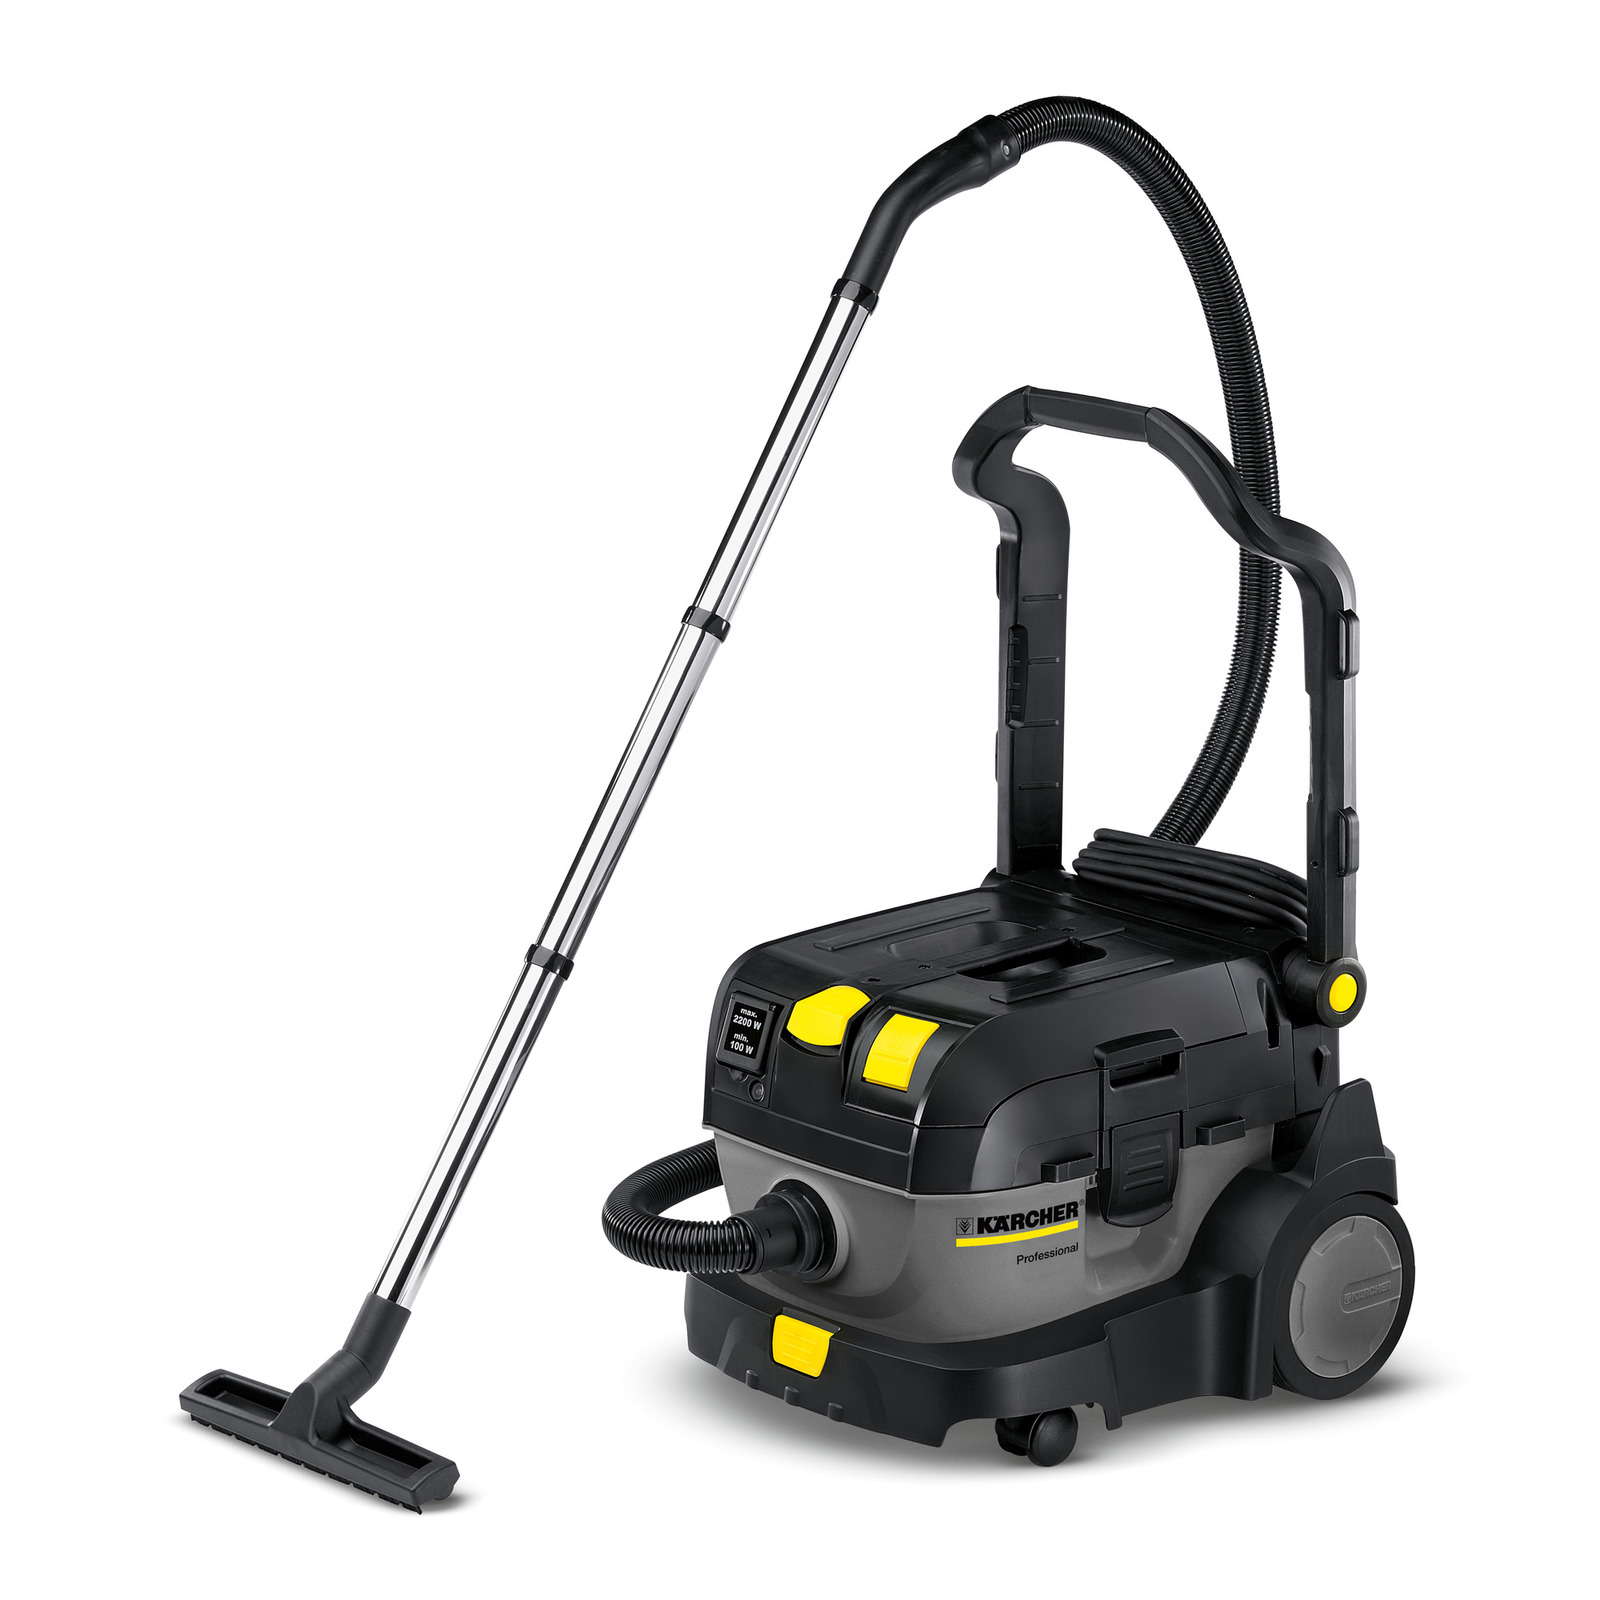 aspirateur karcher maison latest aspirateur balai krcher vc premium with aspirateur karcher. Black Bedroom Furniture Sets. Home Design Ideas